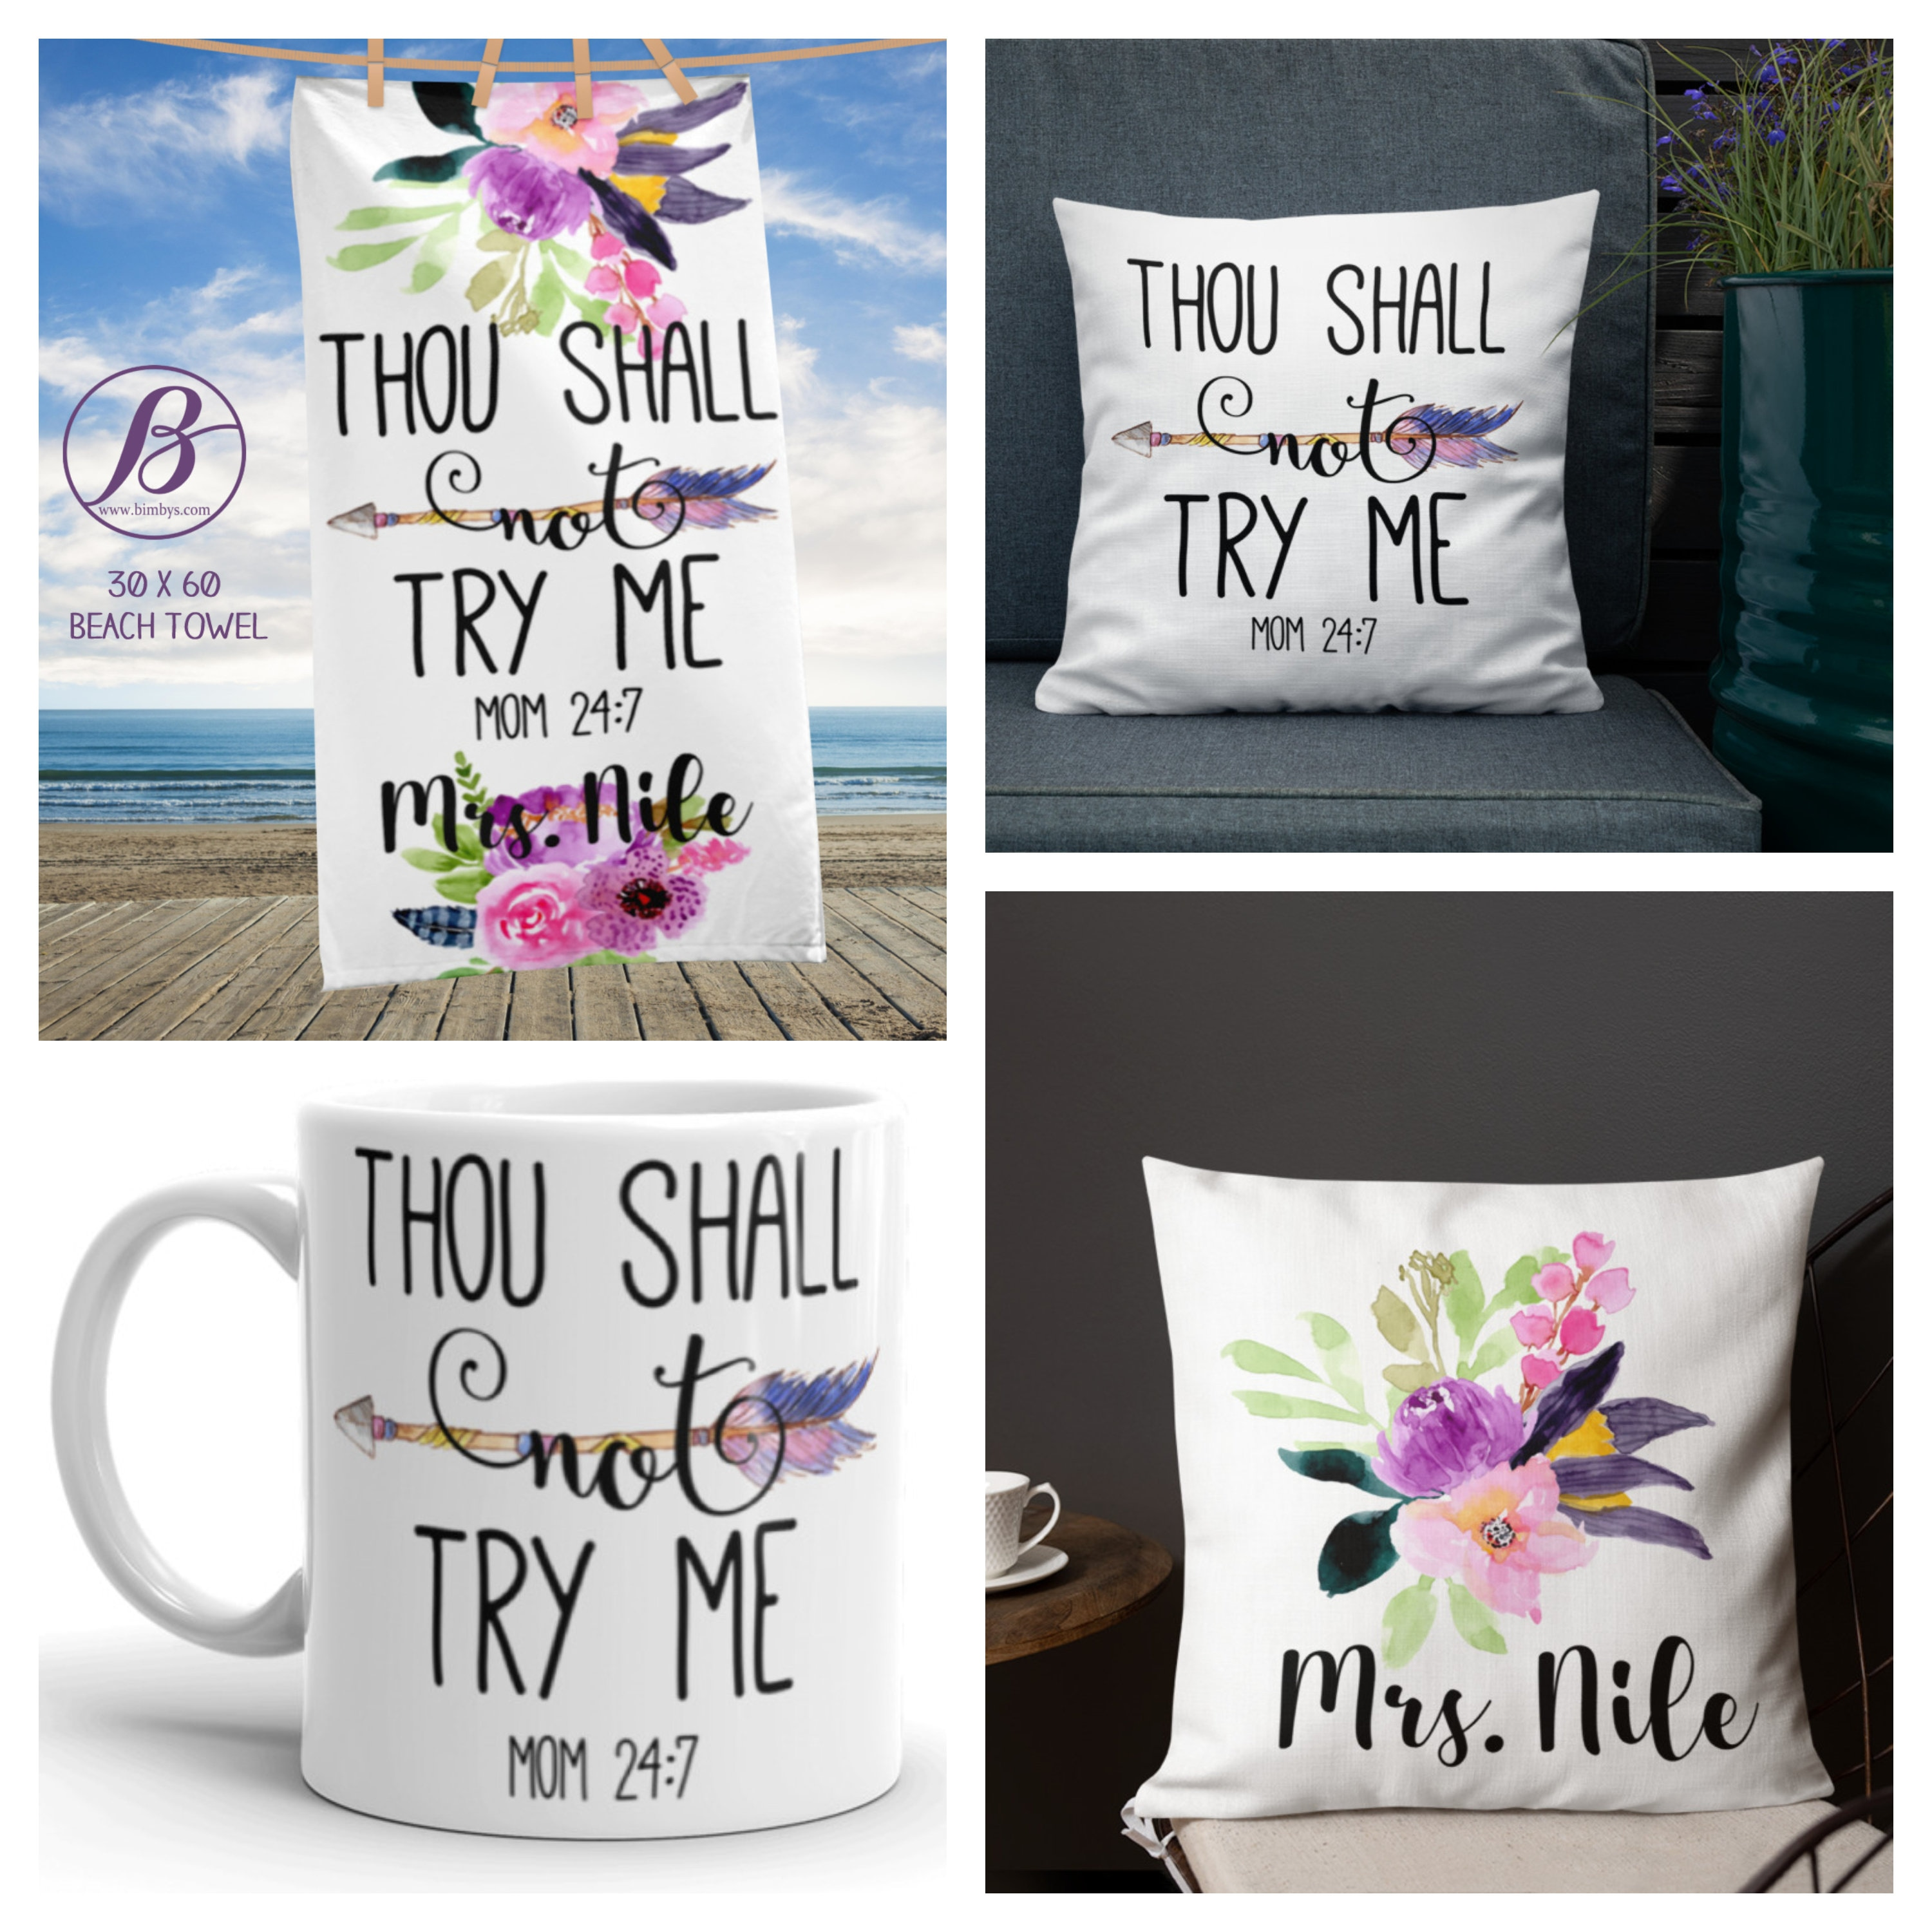 3a8ab47f186 Thou shall not try me - Custom Gifts for Moms - Funny Quotes Personalized  Gifts - gifts for mom